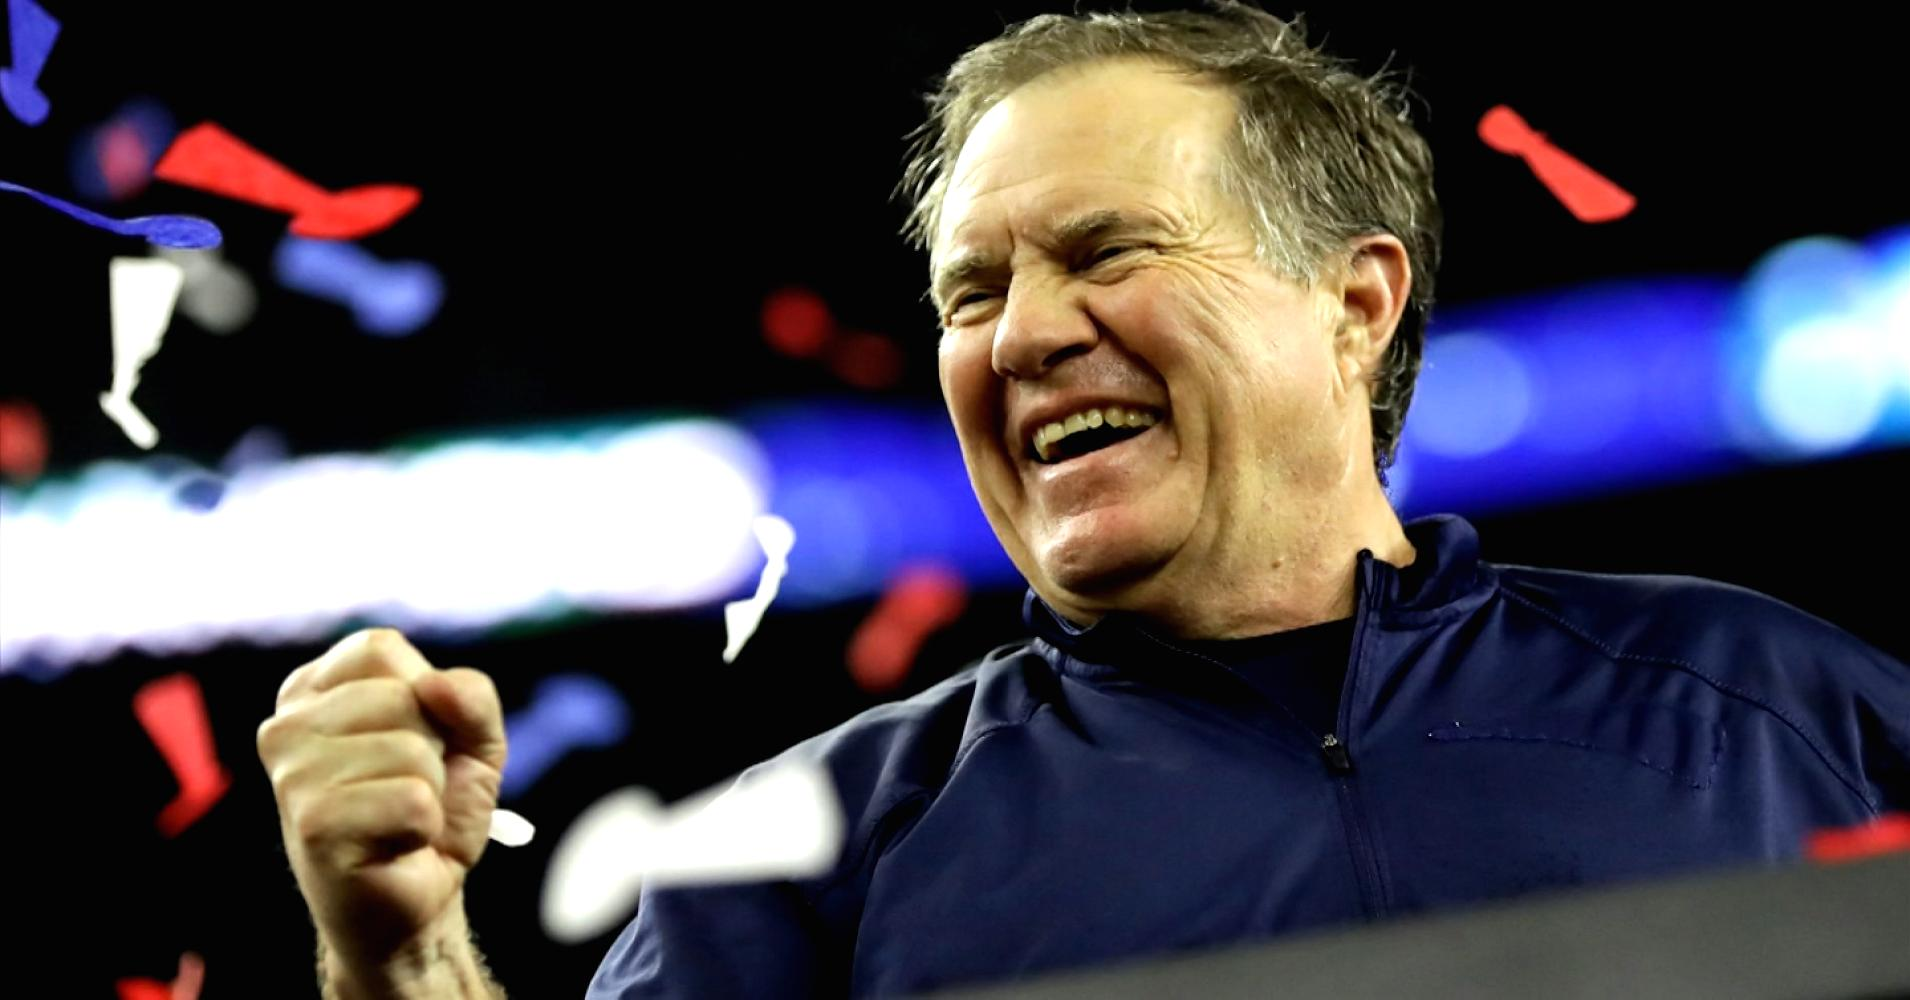 Legendary coach Bill Belichick's shares his top 5 tips on #success and winning: https://t.co/dPnBmuLYXx https://t.co/GUvjqqB6R8